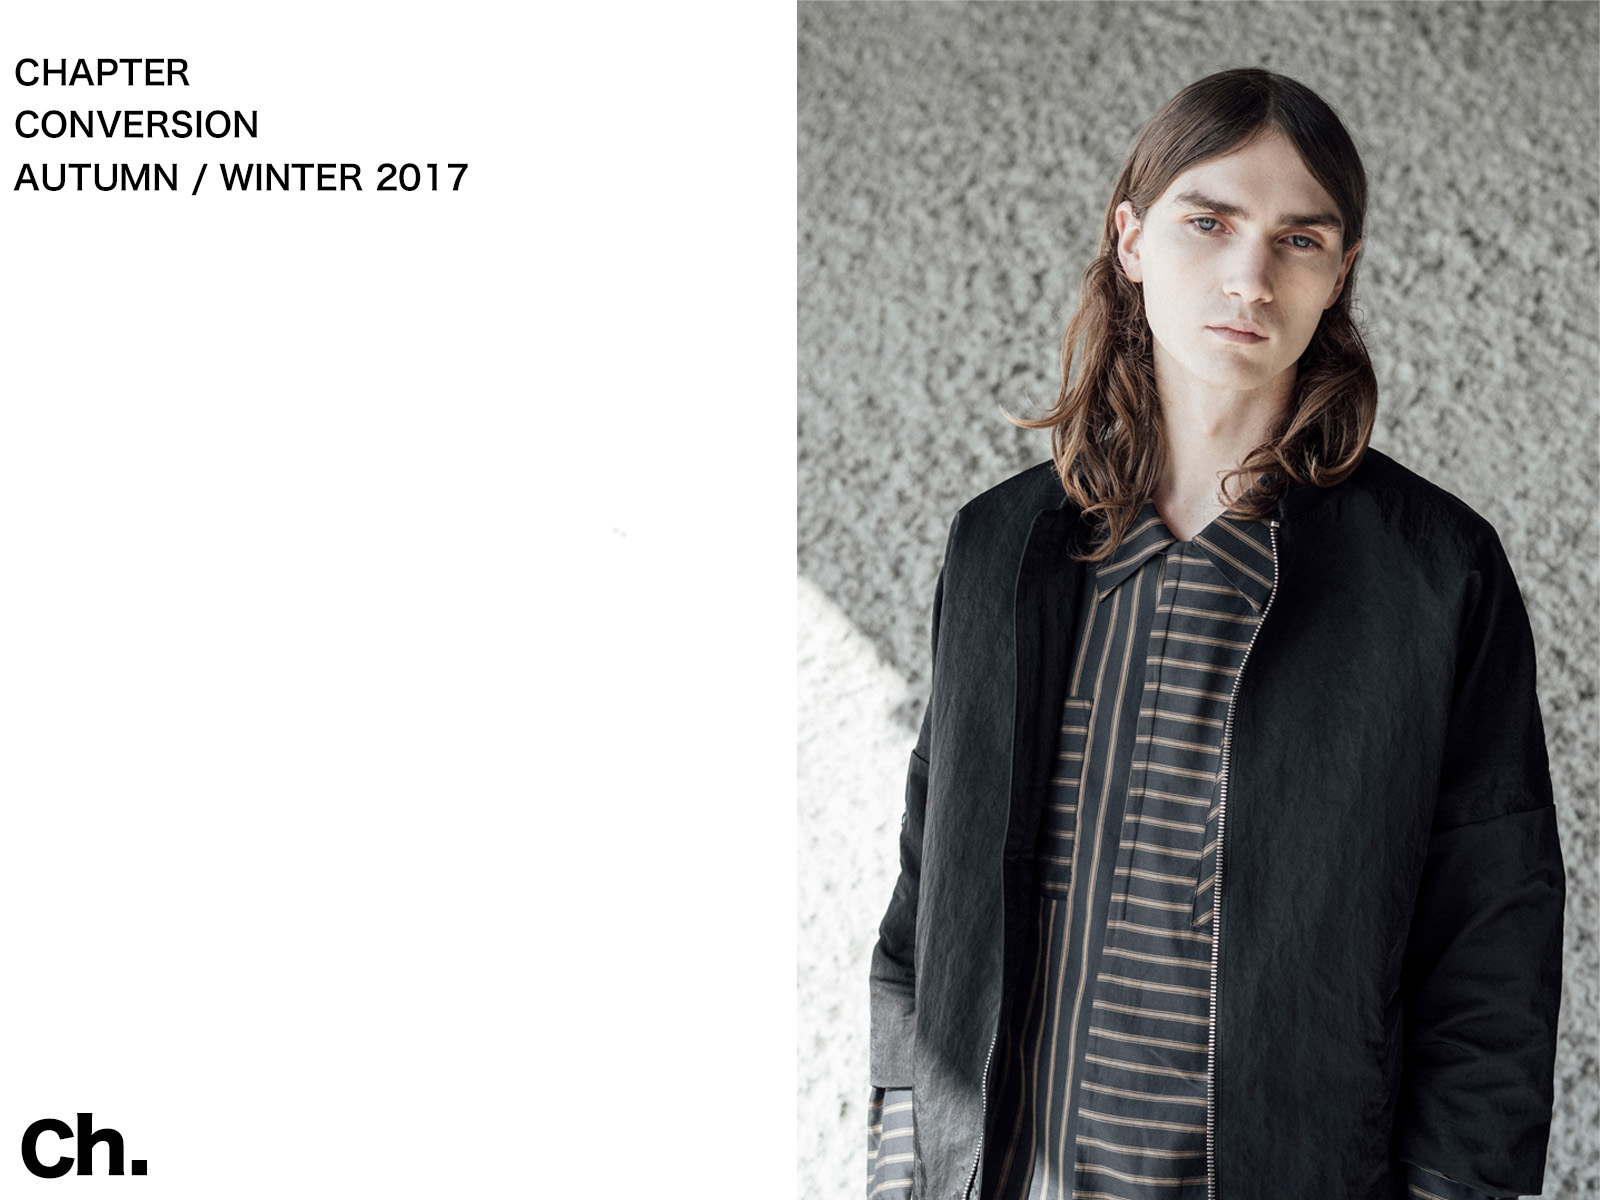 CHAPTER AUTUMN/WINTER 2017 アイテム紹介